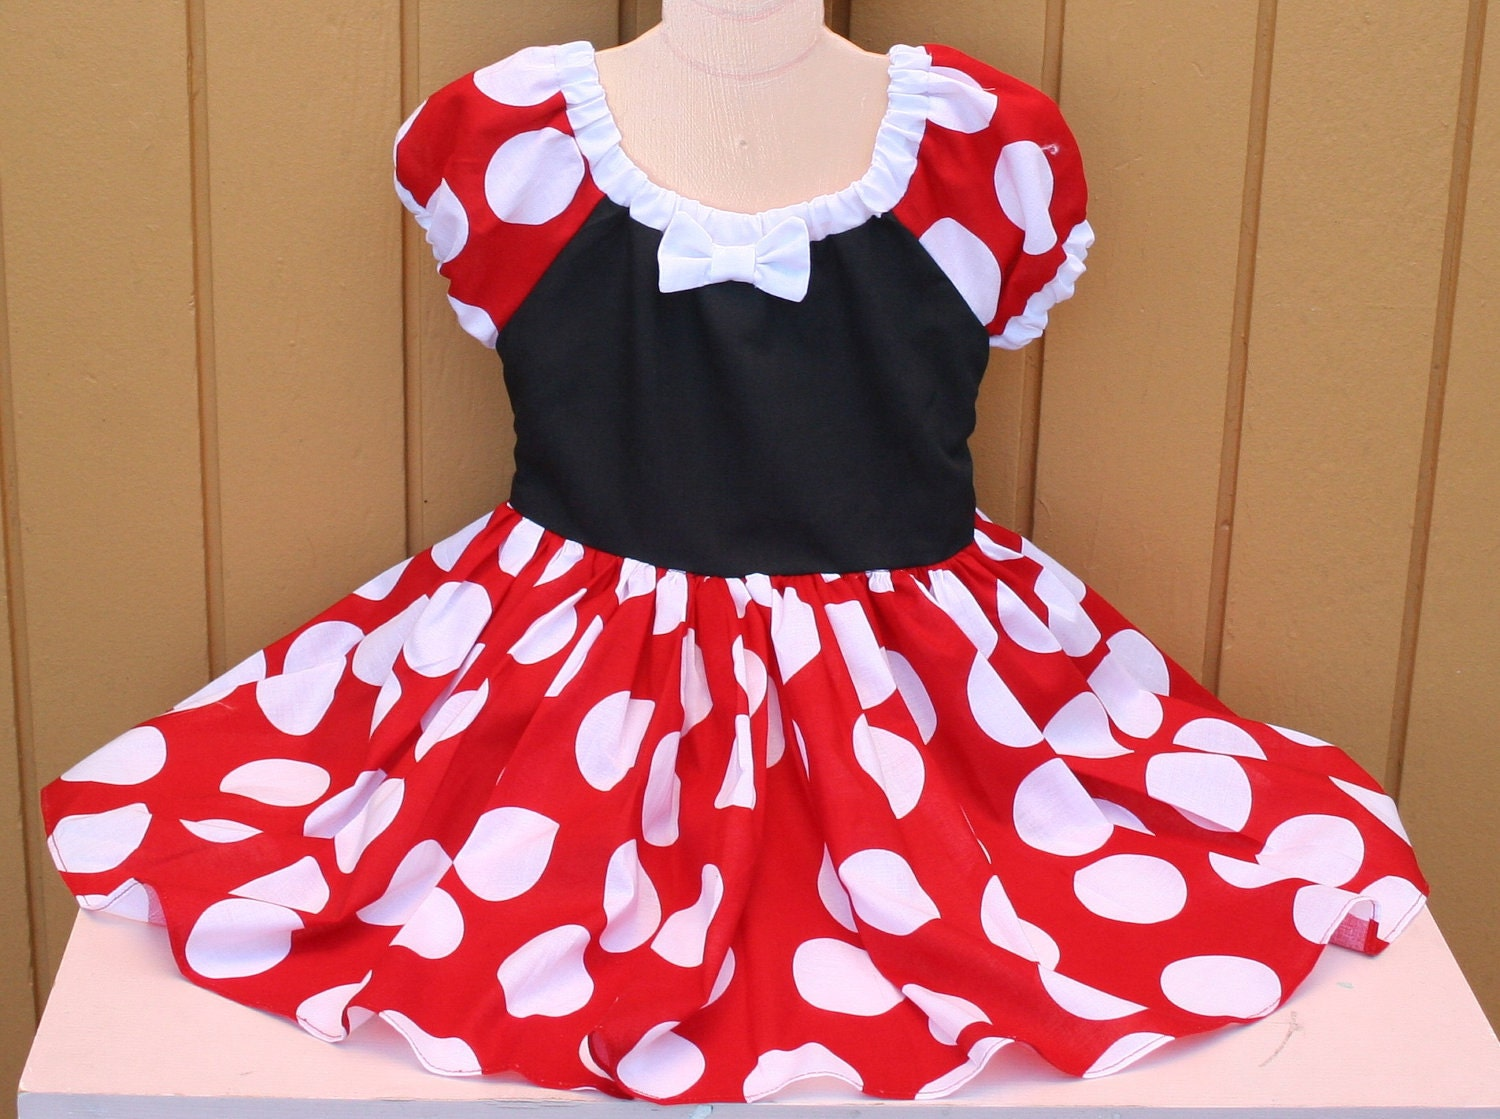 Minnie Mouse Dress In Red Polka Dots Super Twirly Peasant